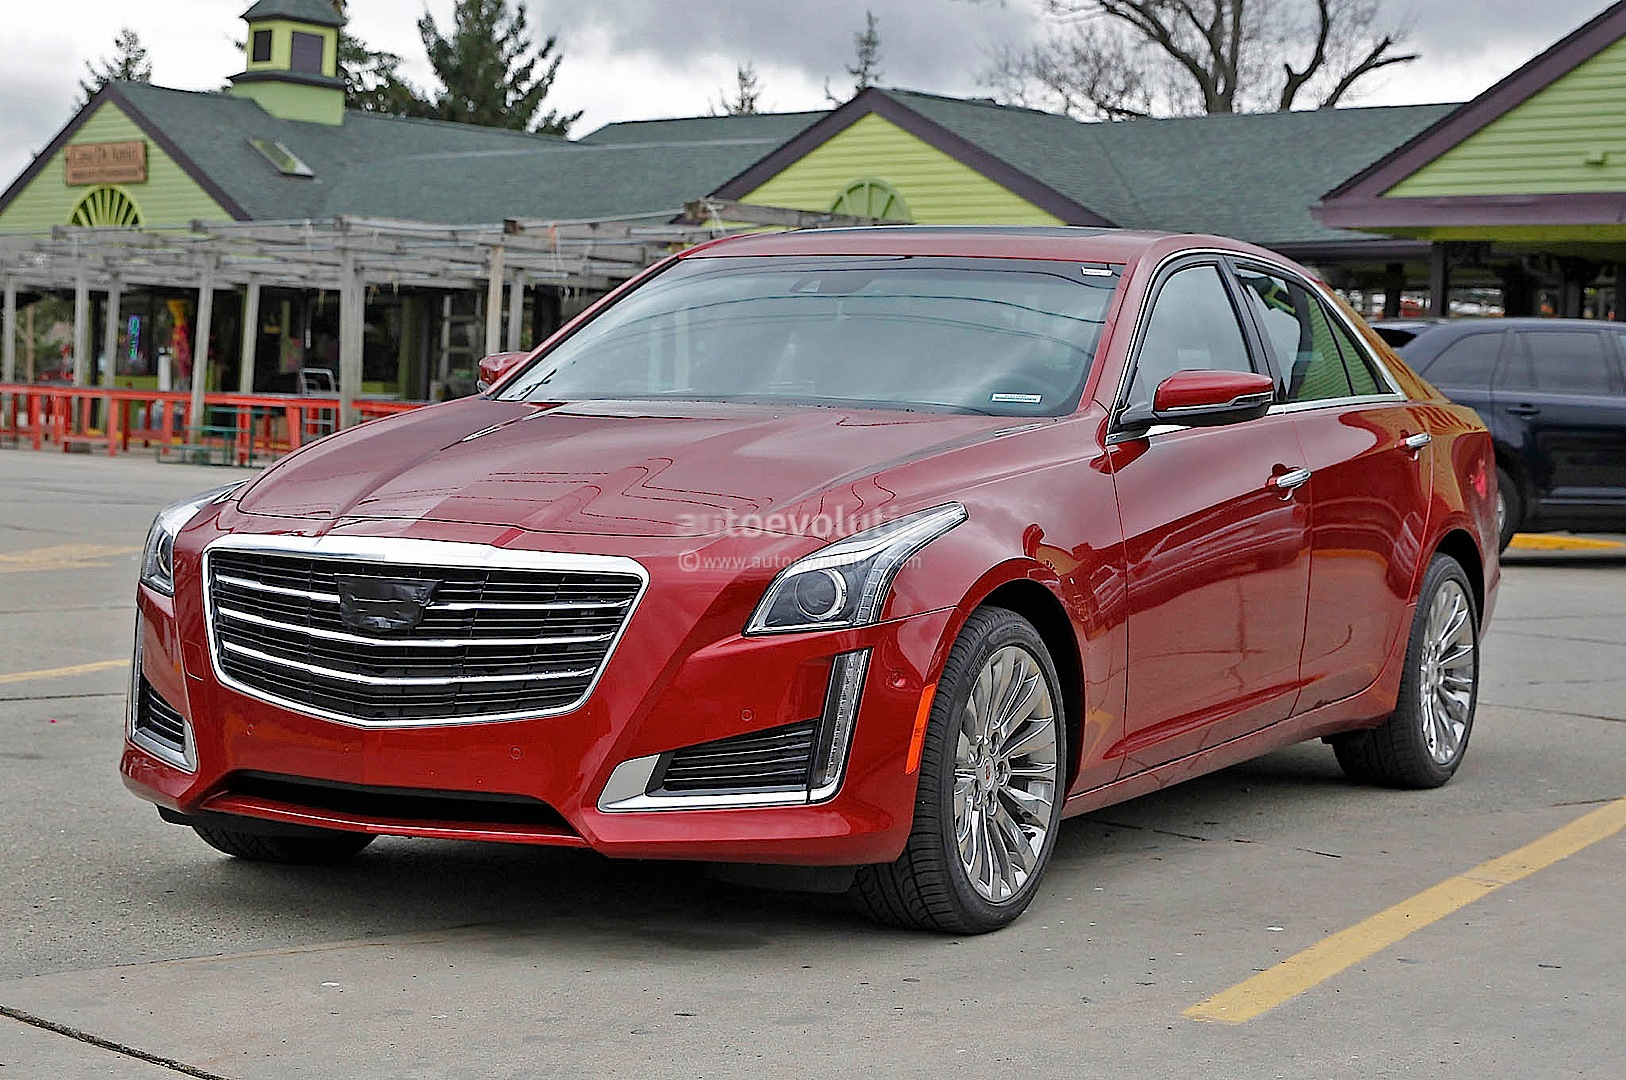 2015 Cadillac Cts Gets Revised Styling And Added Tech